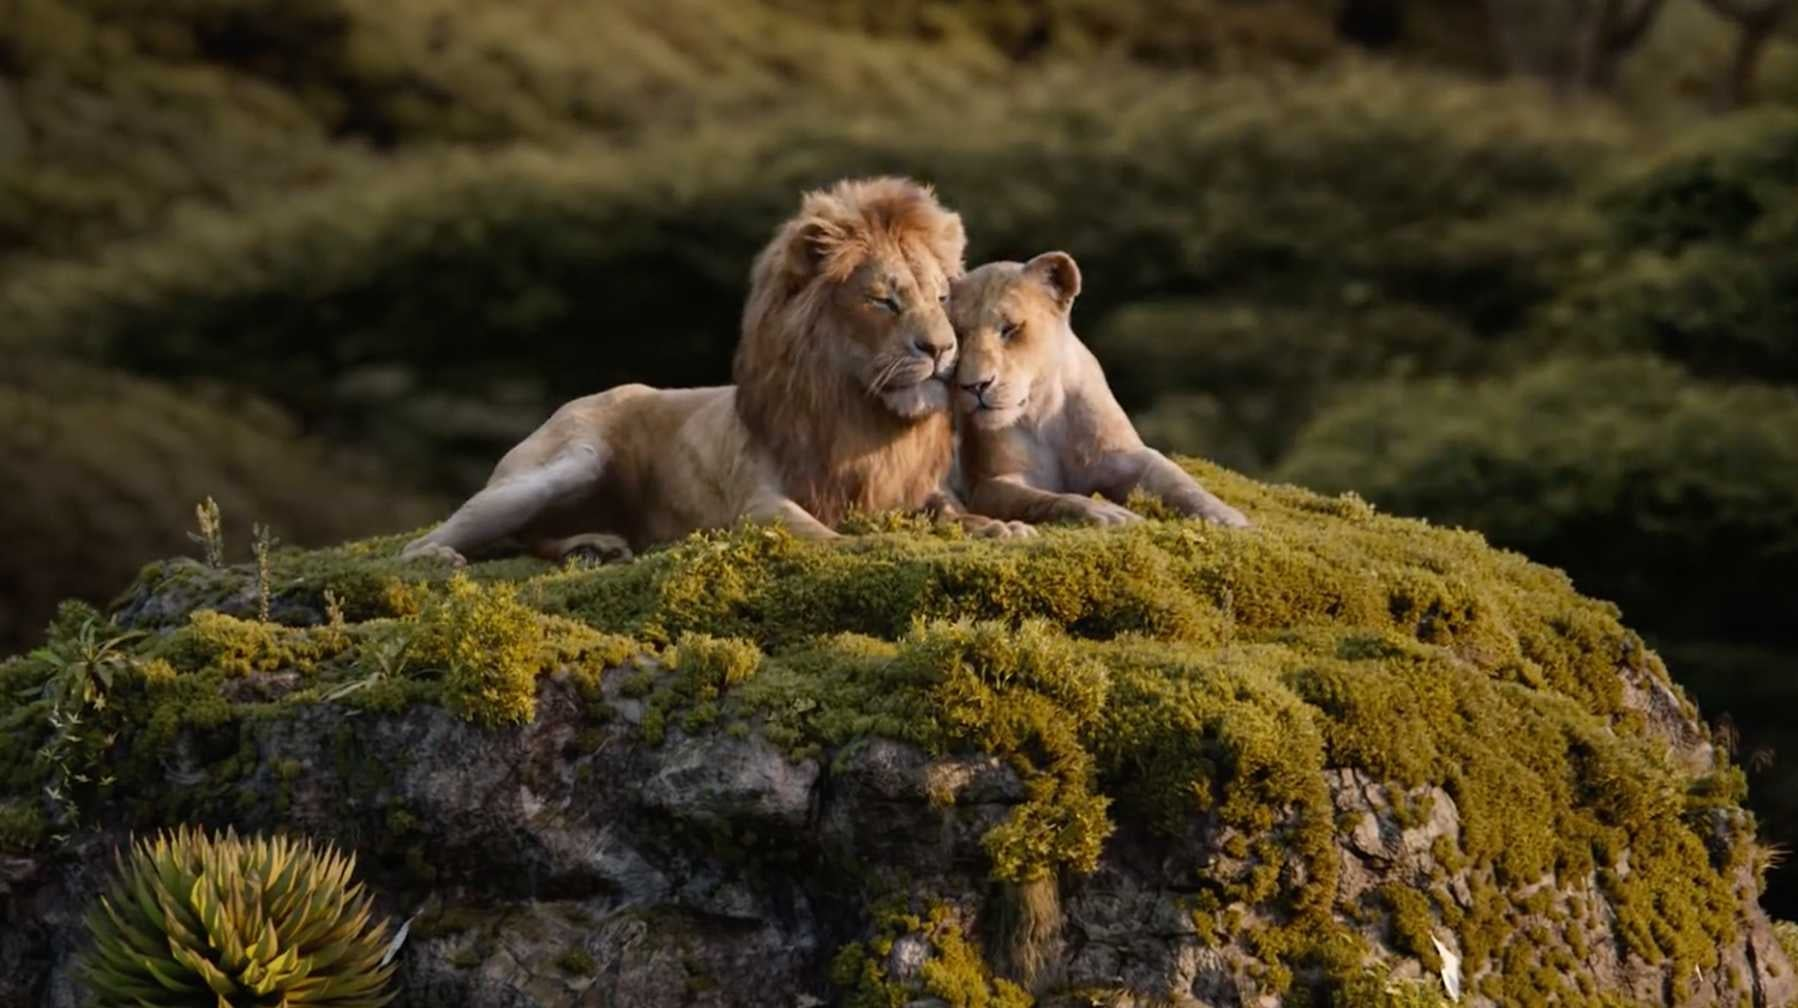 Jon Favreau's The Lion King Had One Shot In It That Wasn't CGI